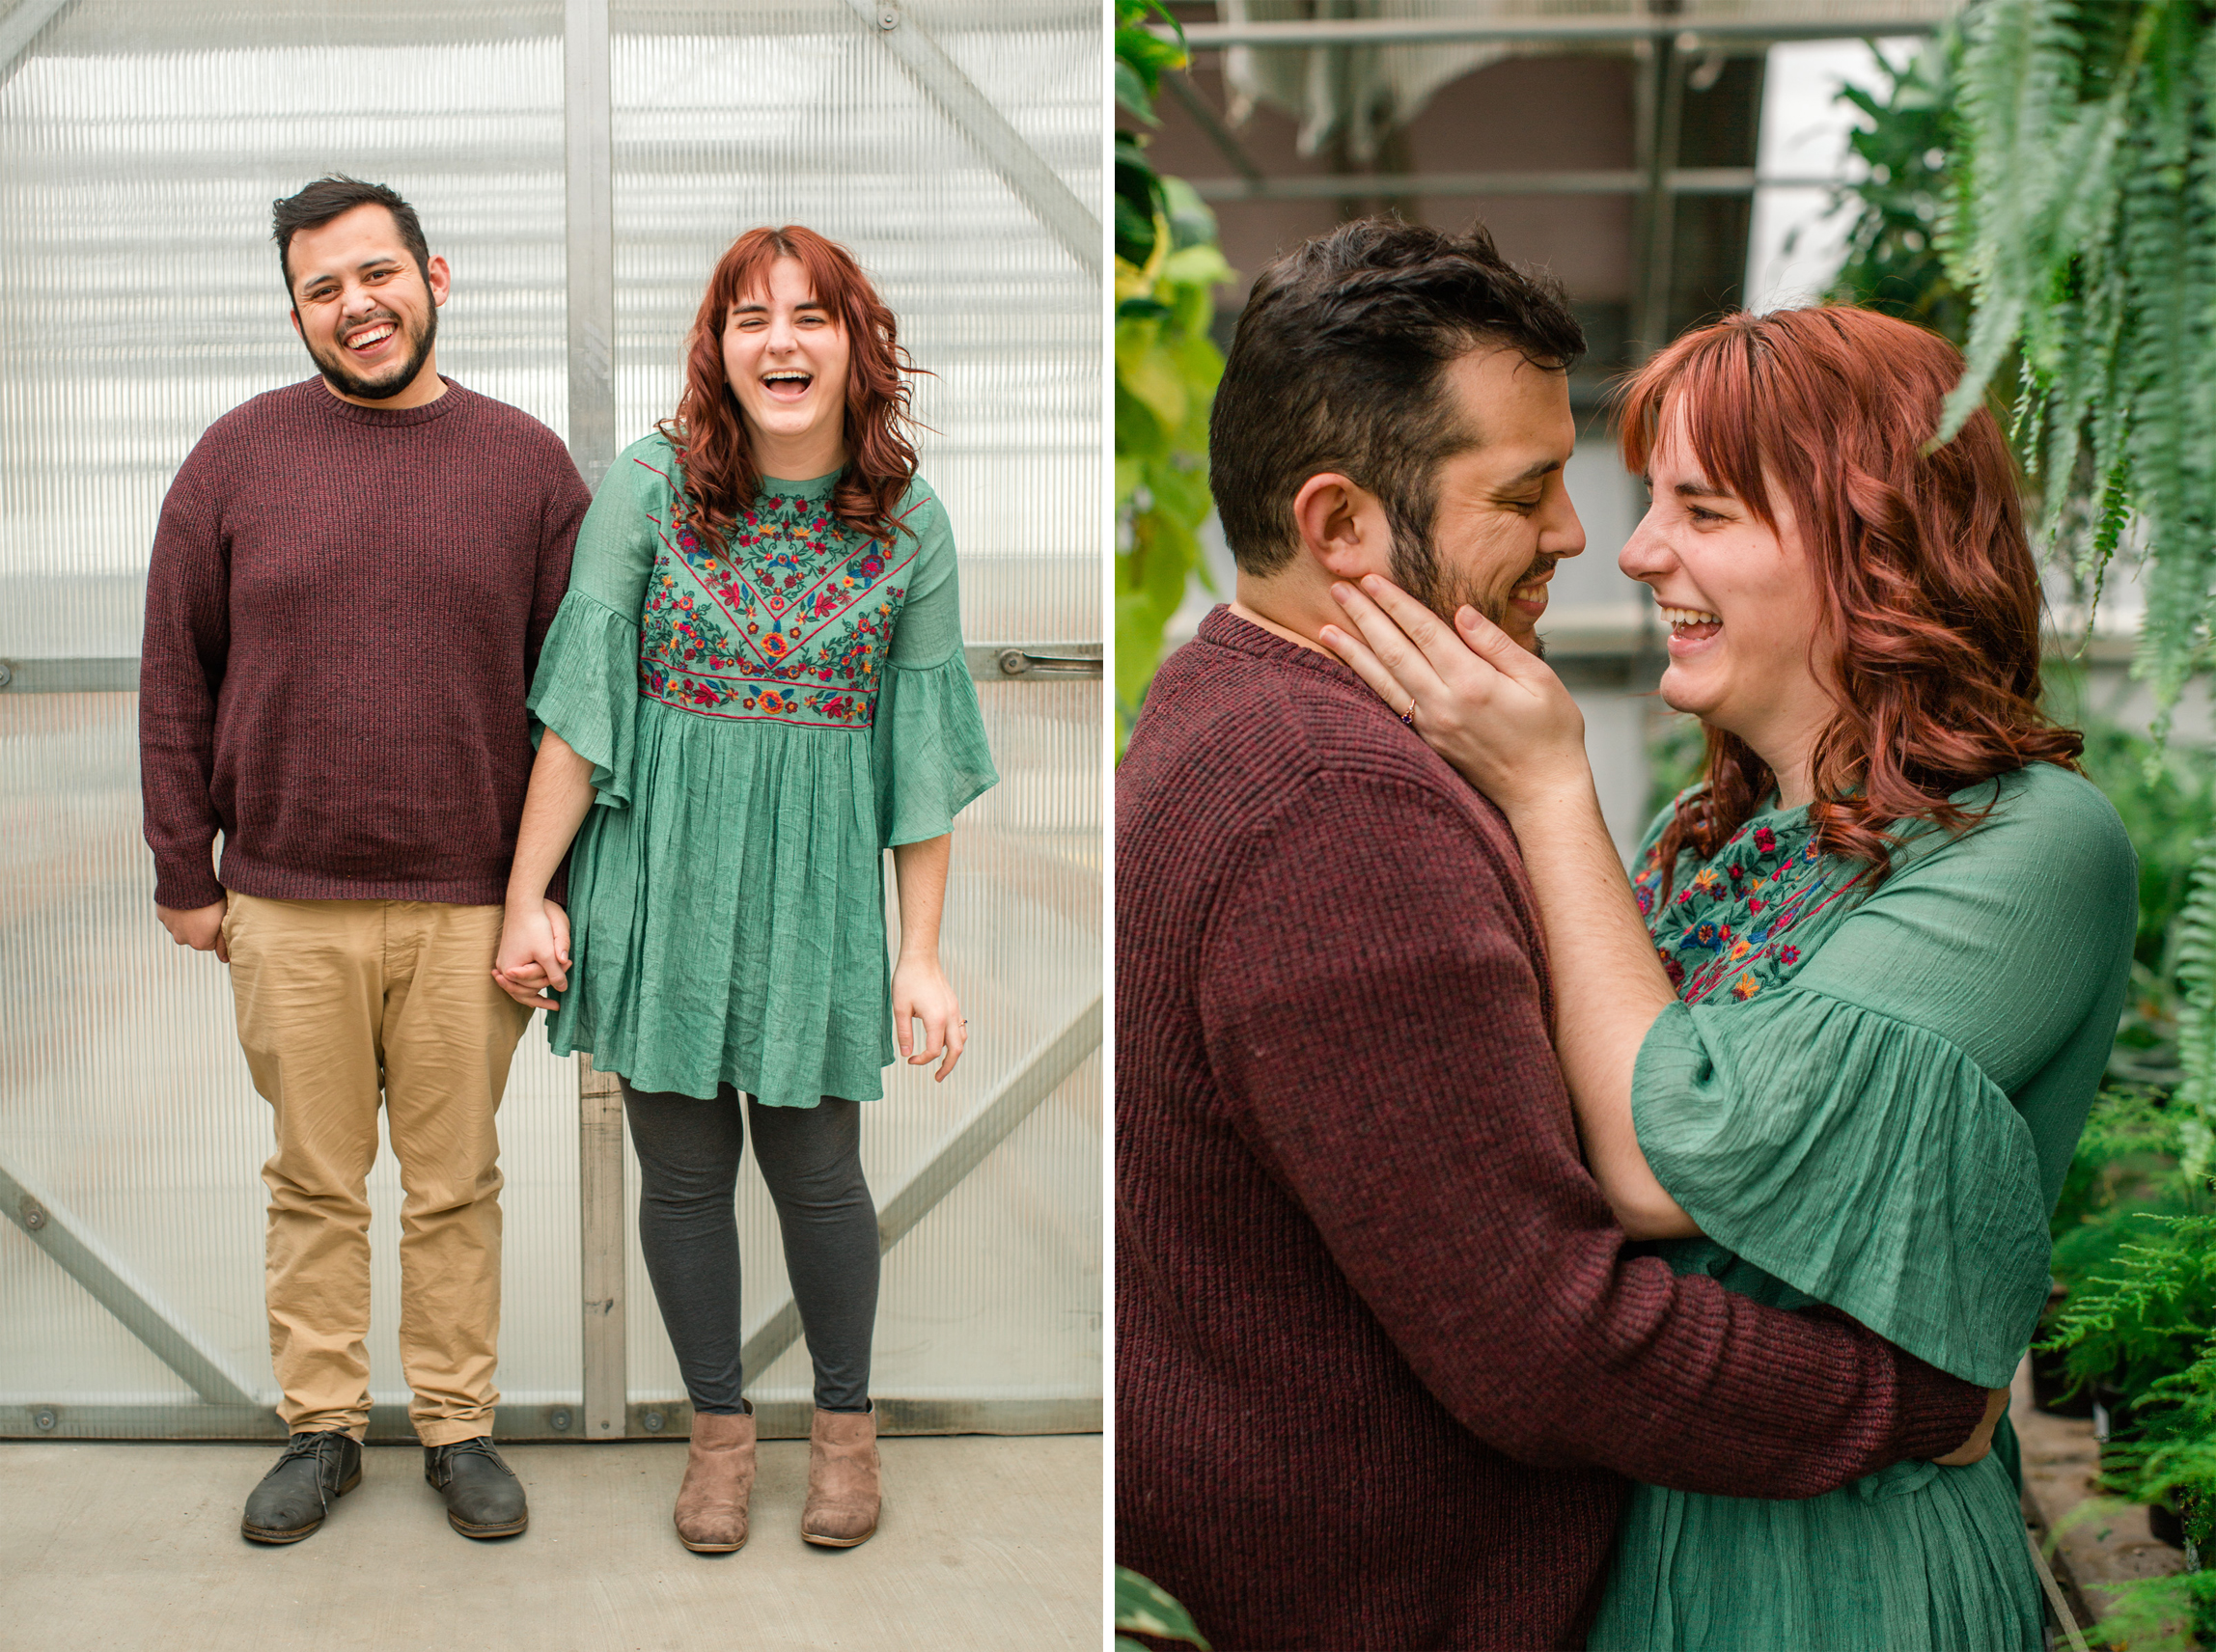 engagement pictures in a greenhouse des moines iowa